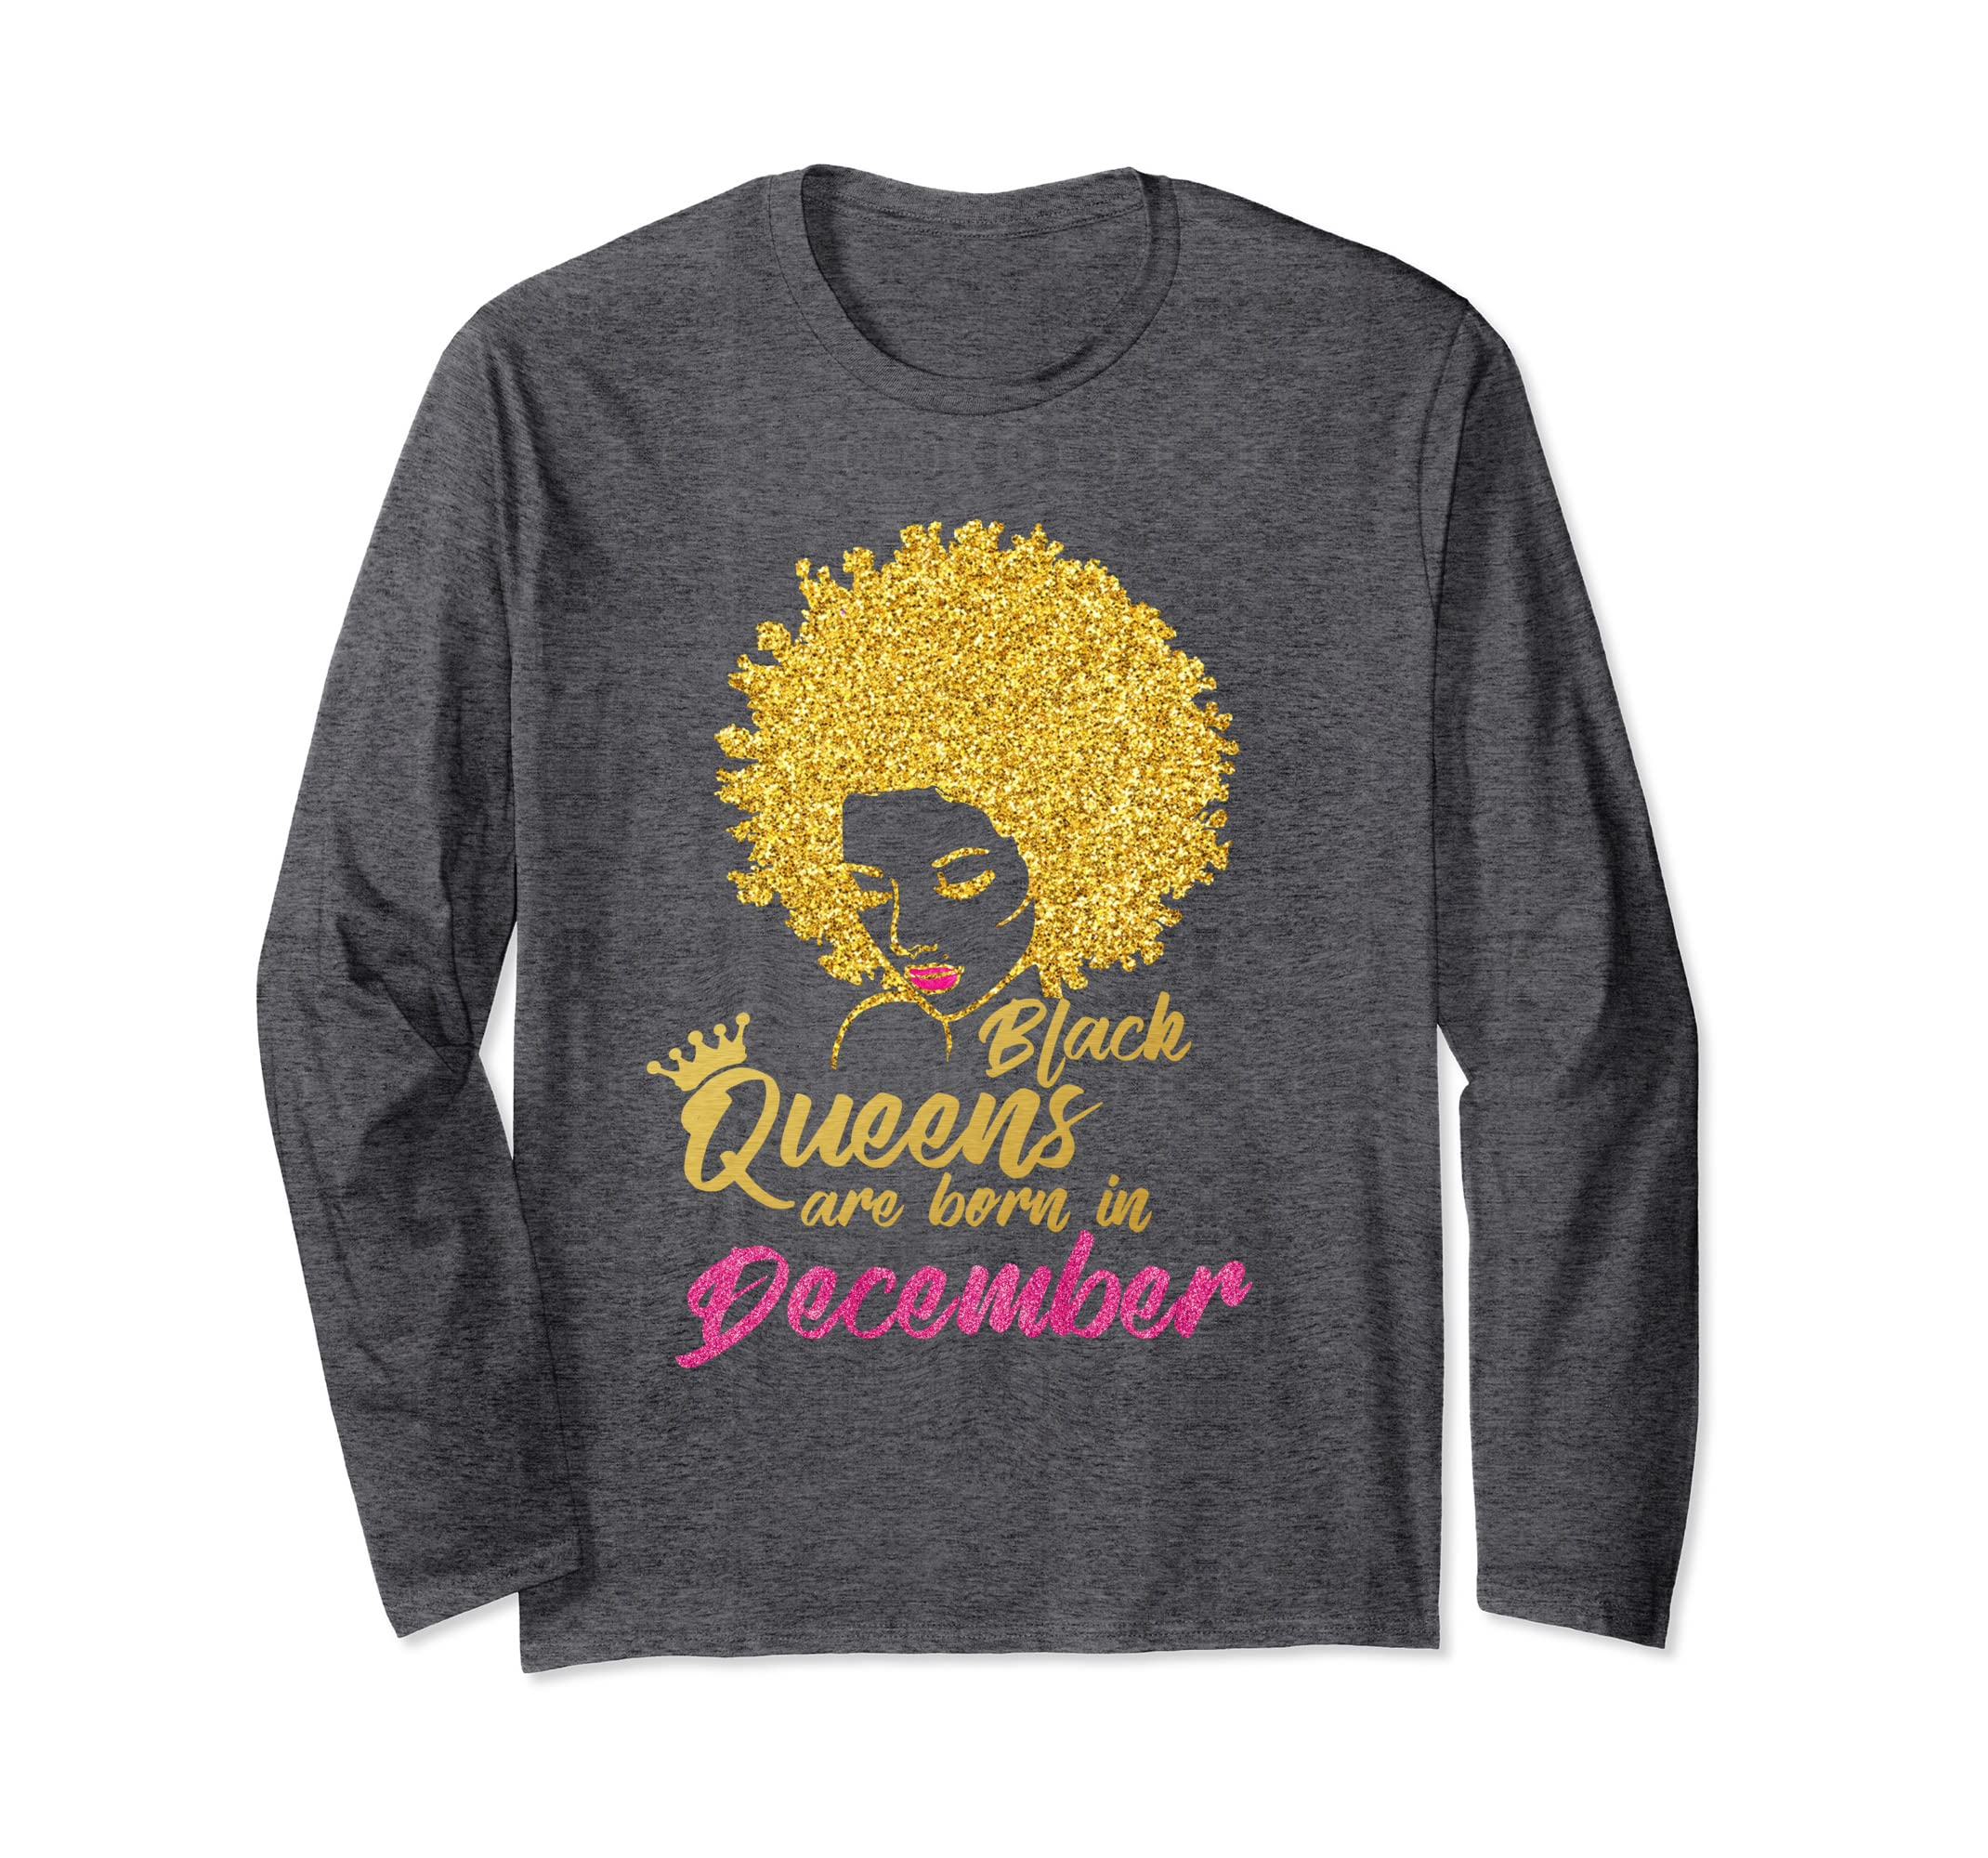 e362e0662 Amazon.com: Black Queens Are Born In December Birthday Shirt for Women:  Clothing